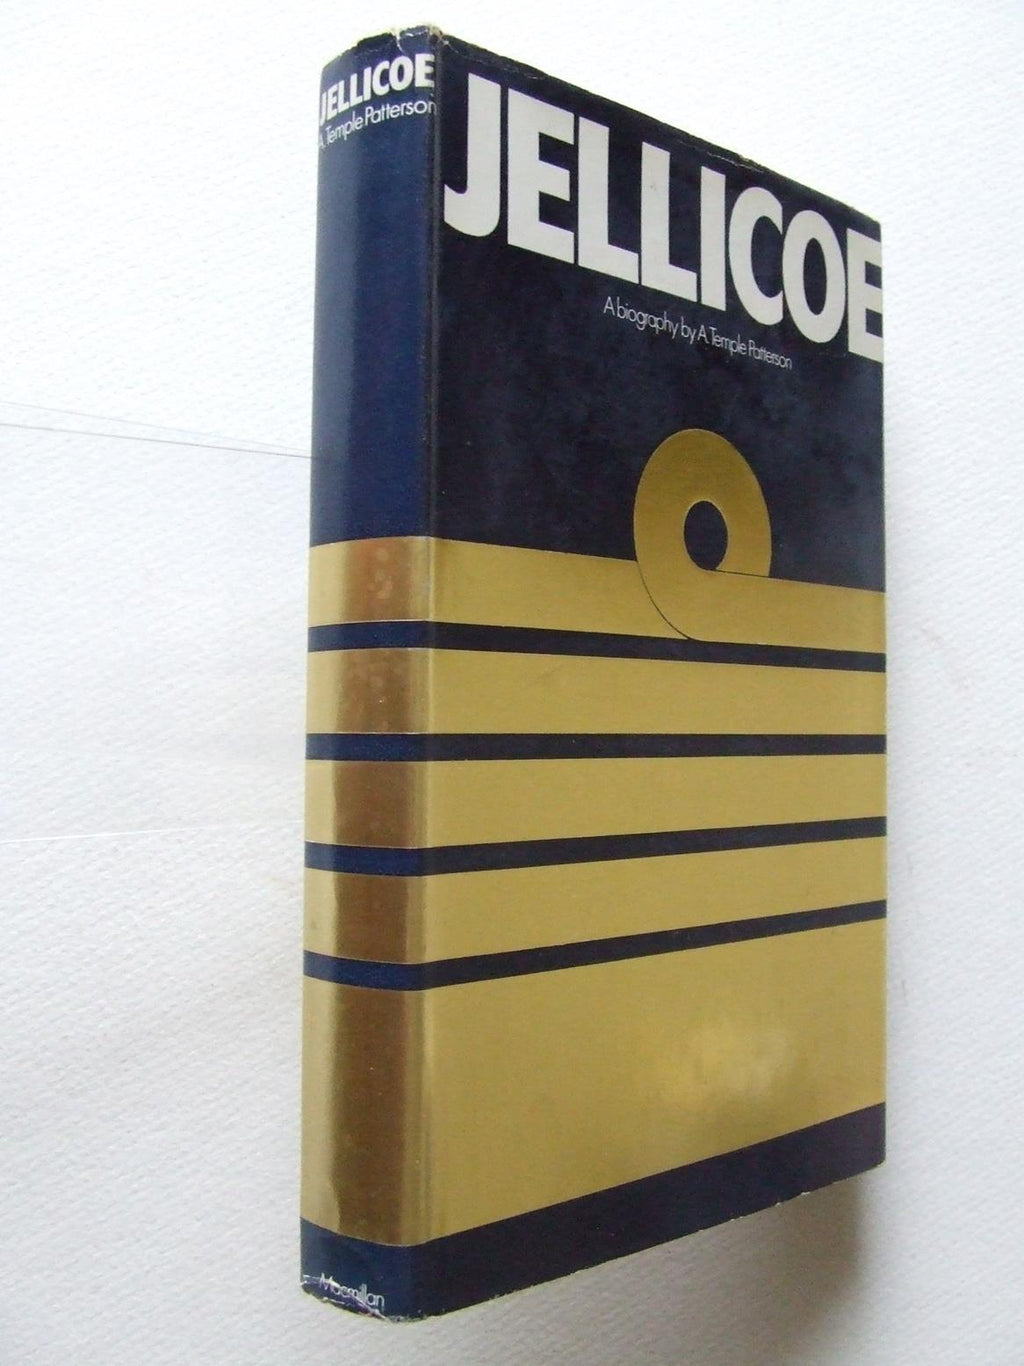 Jellicoe, a biography